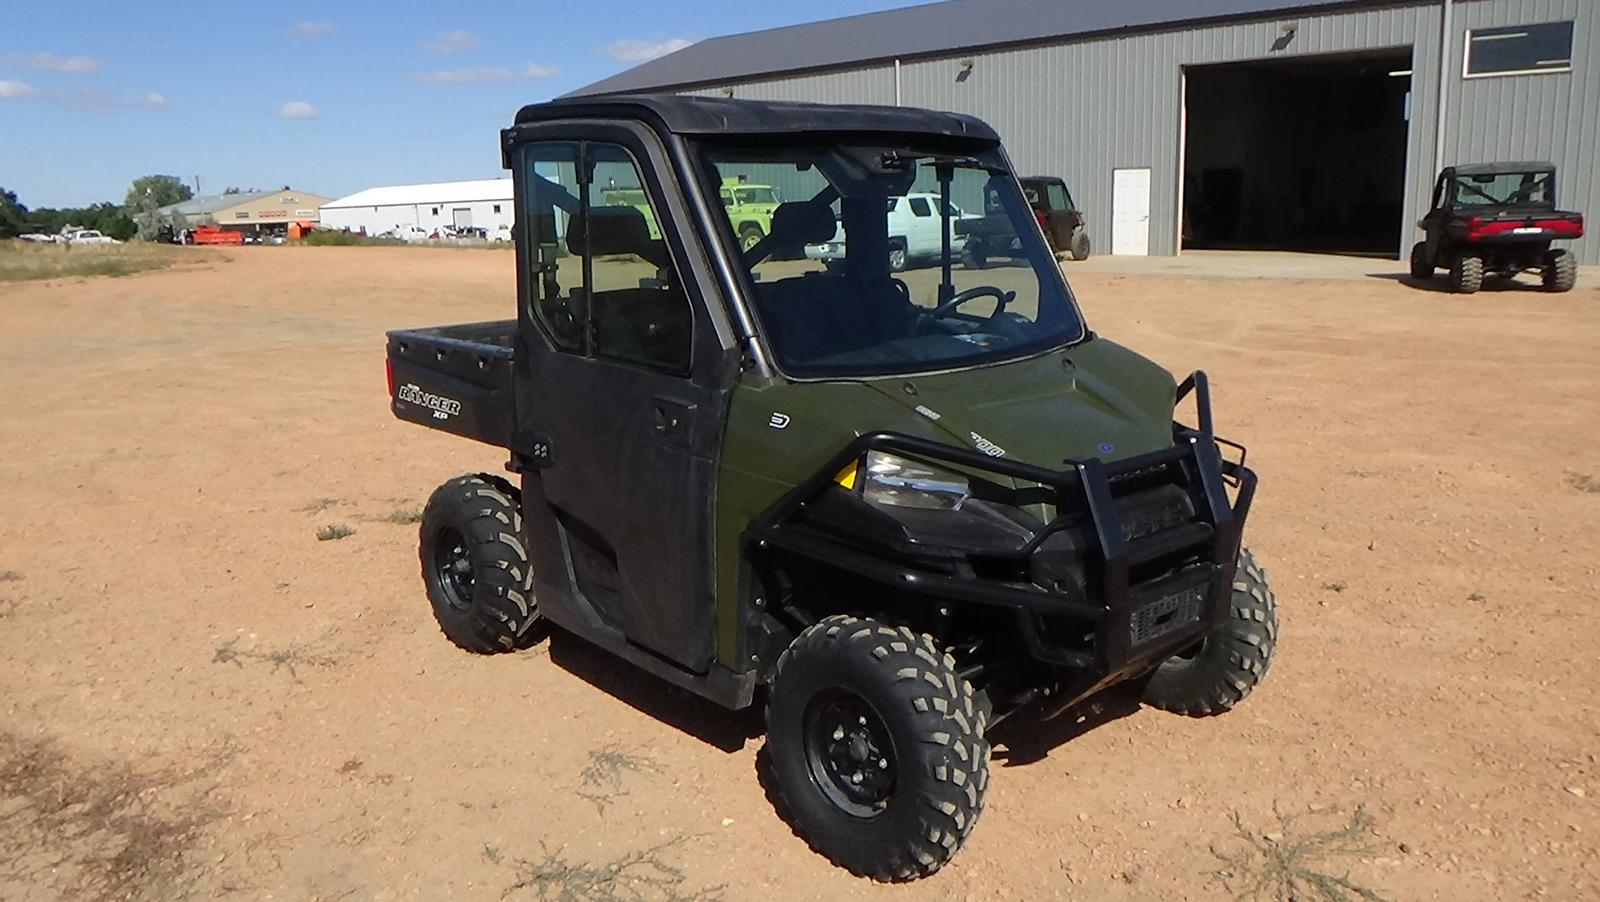 2018 polaris industries polaris- ranger xp 900 eps- sage green